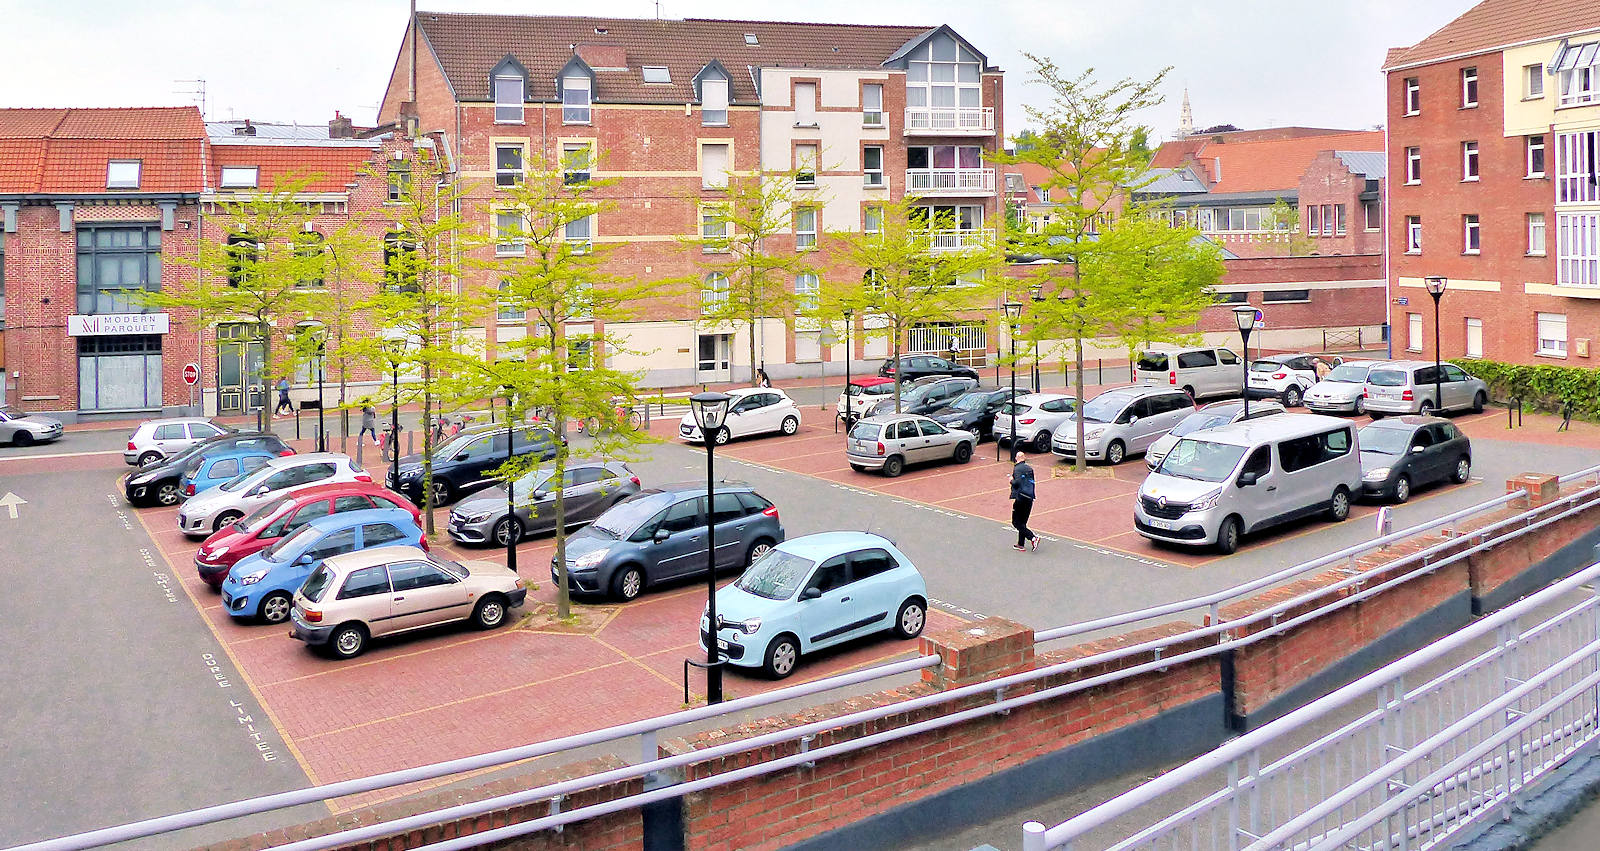 Parking Tourcoing - Rue des Anges, Tourcoing centre